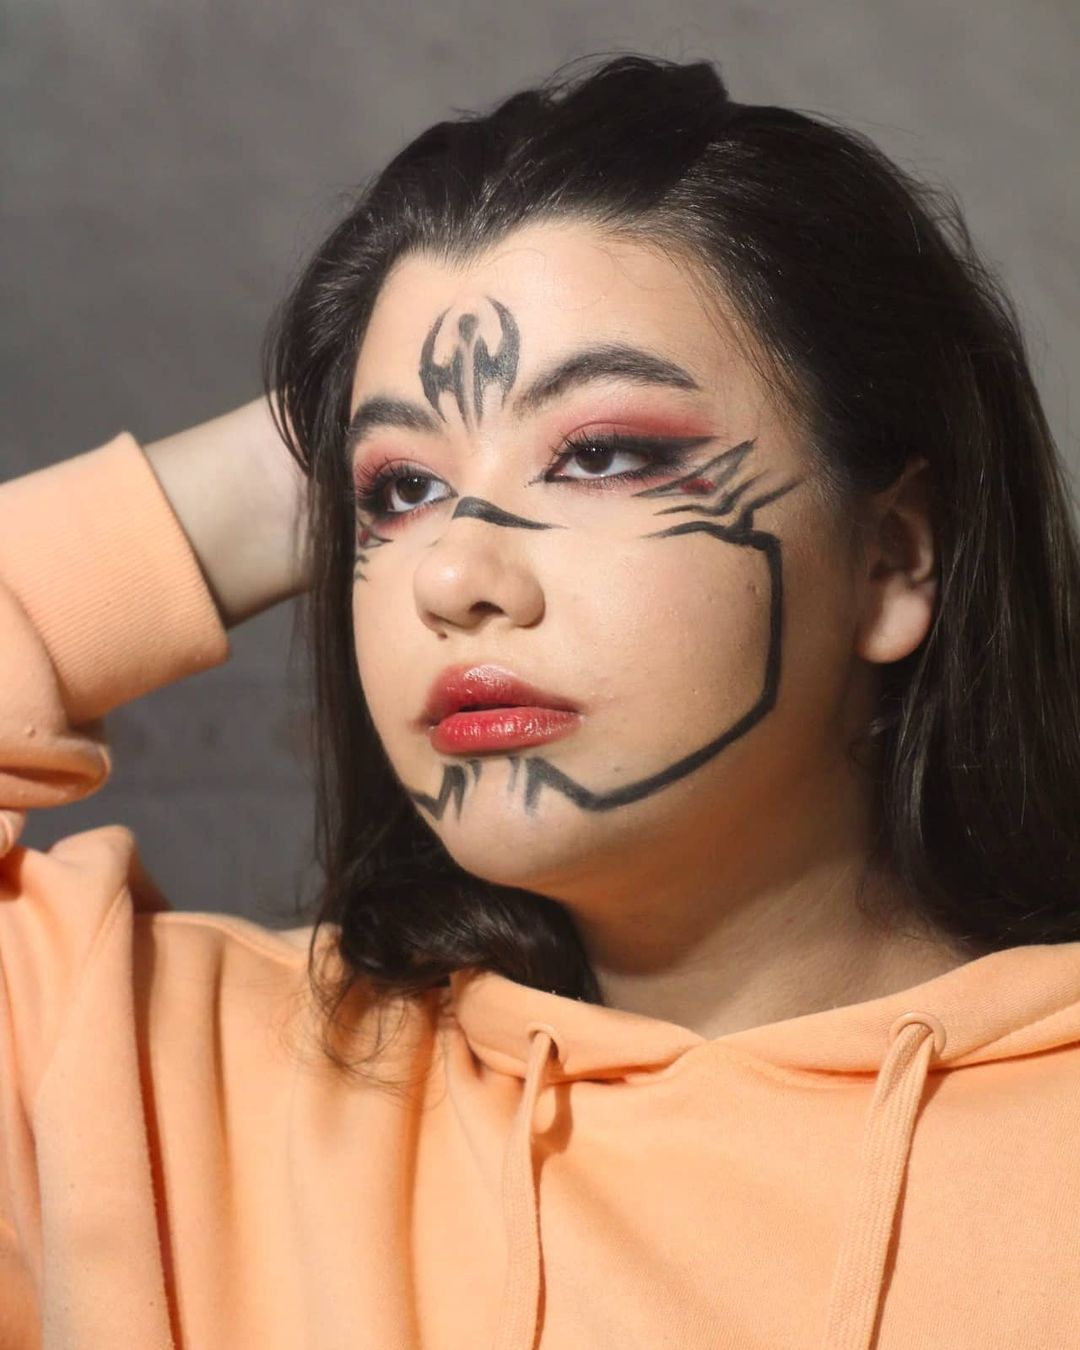 Ana Anabeatriz Mua Added A Photo To Their Instagram Account Sukuna This Makeup Was So Much Fun To Make It S Inspired By Sukuna Ryomen A Characte En 2021